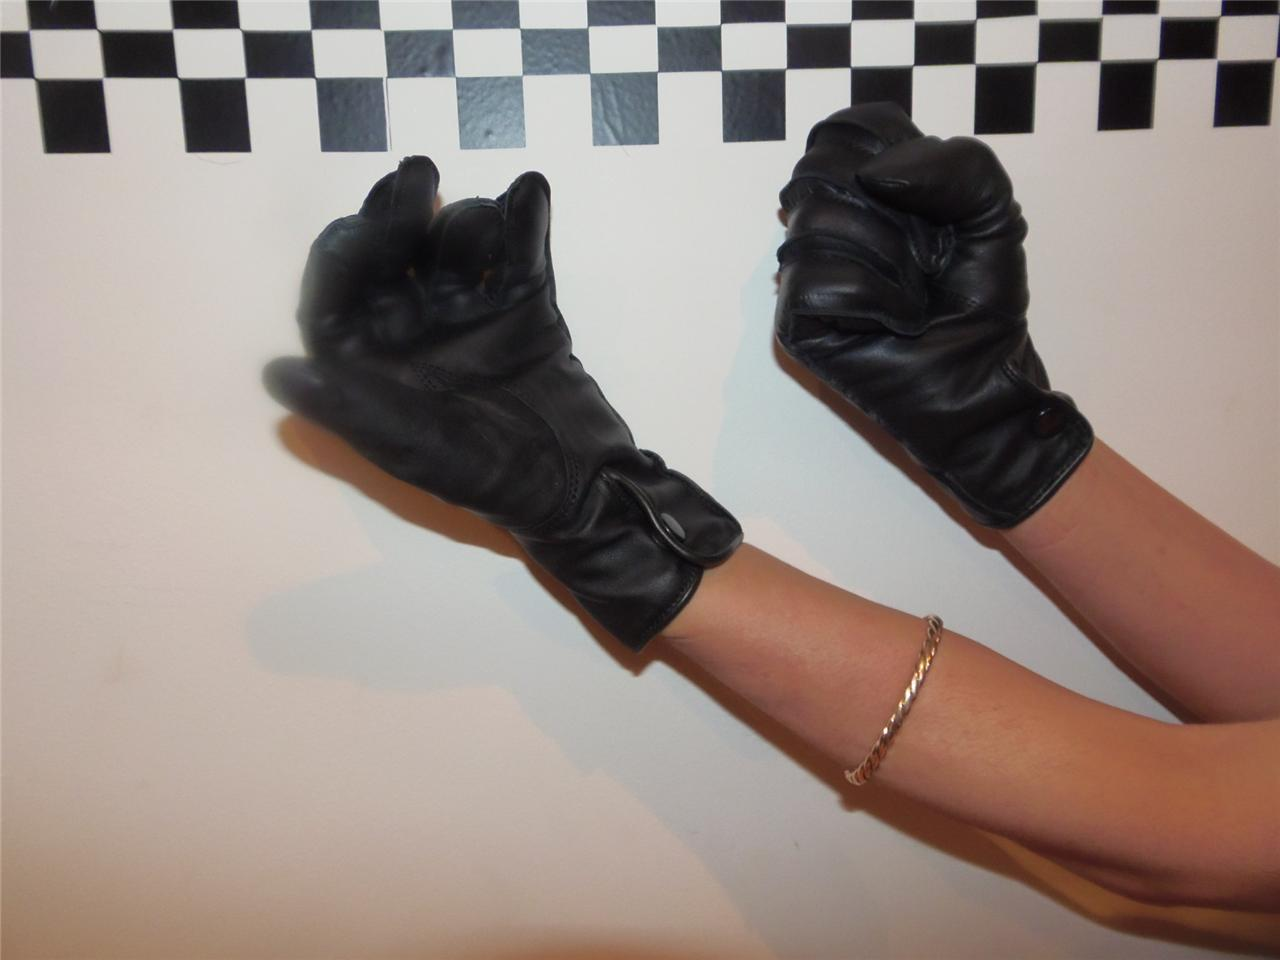 Black leather gloves female - New Genuine Mod Surplus Black Leather Gloves Police Women Search Security Guard